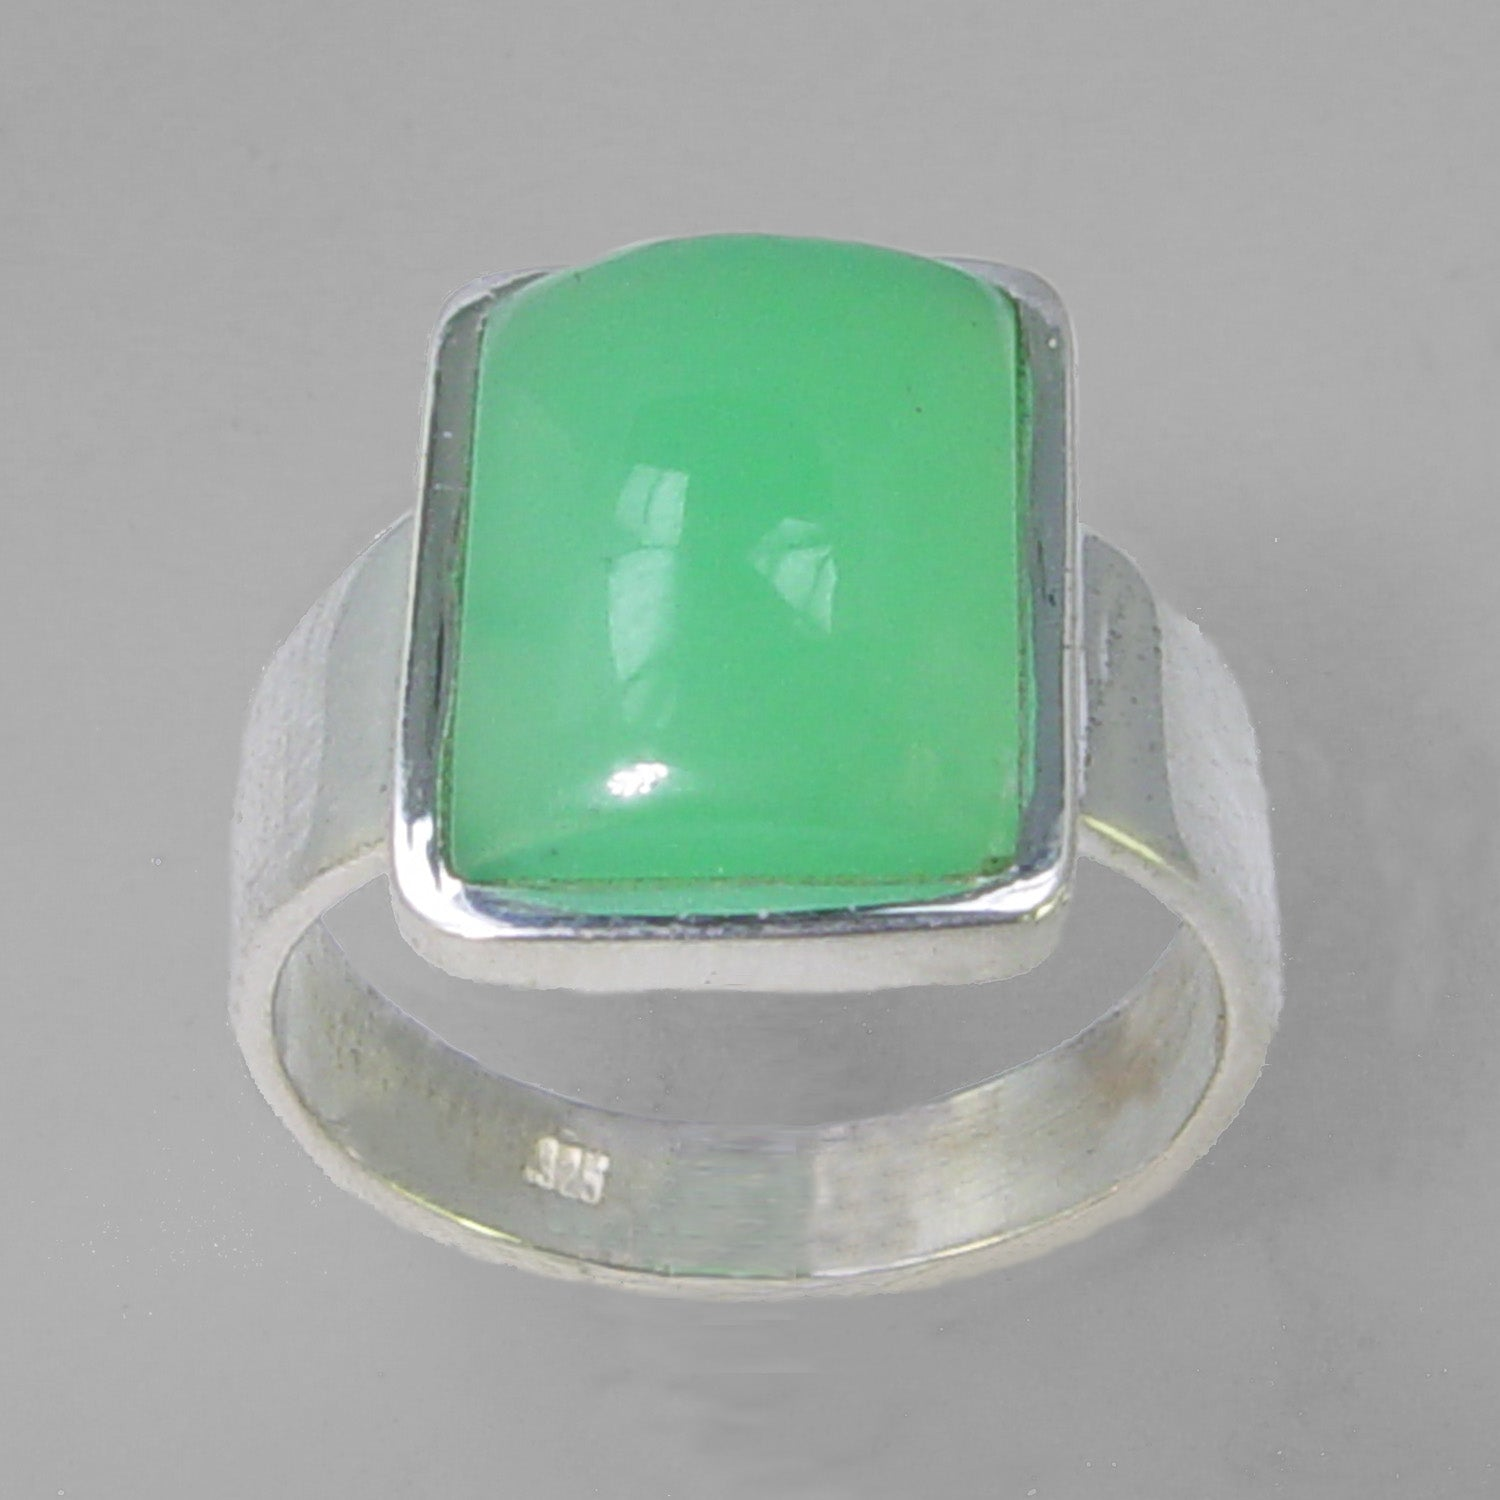 Chrysoprase 8.75 ct Emerald Cab Bezel Set Sterling Silver Ring, Size 7.5